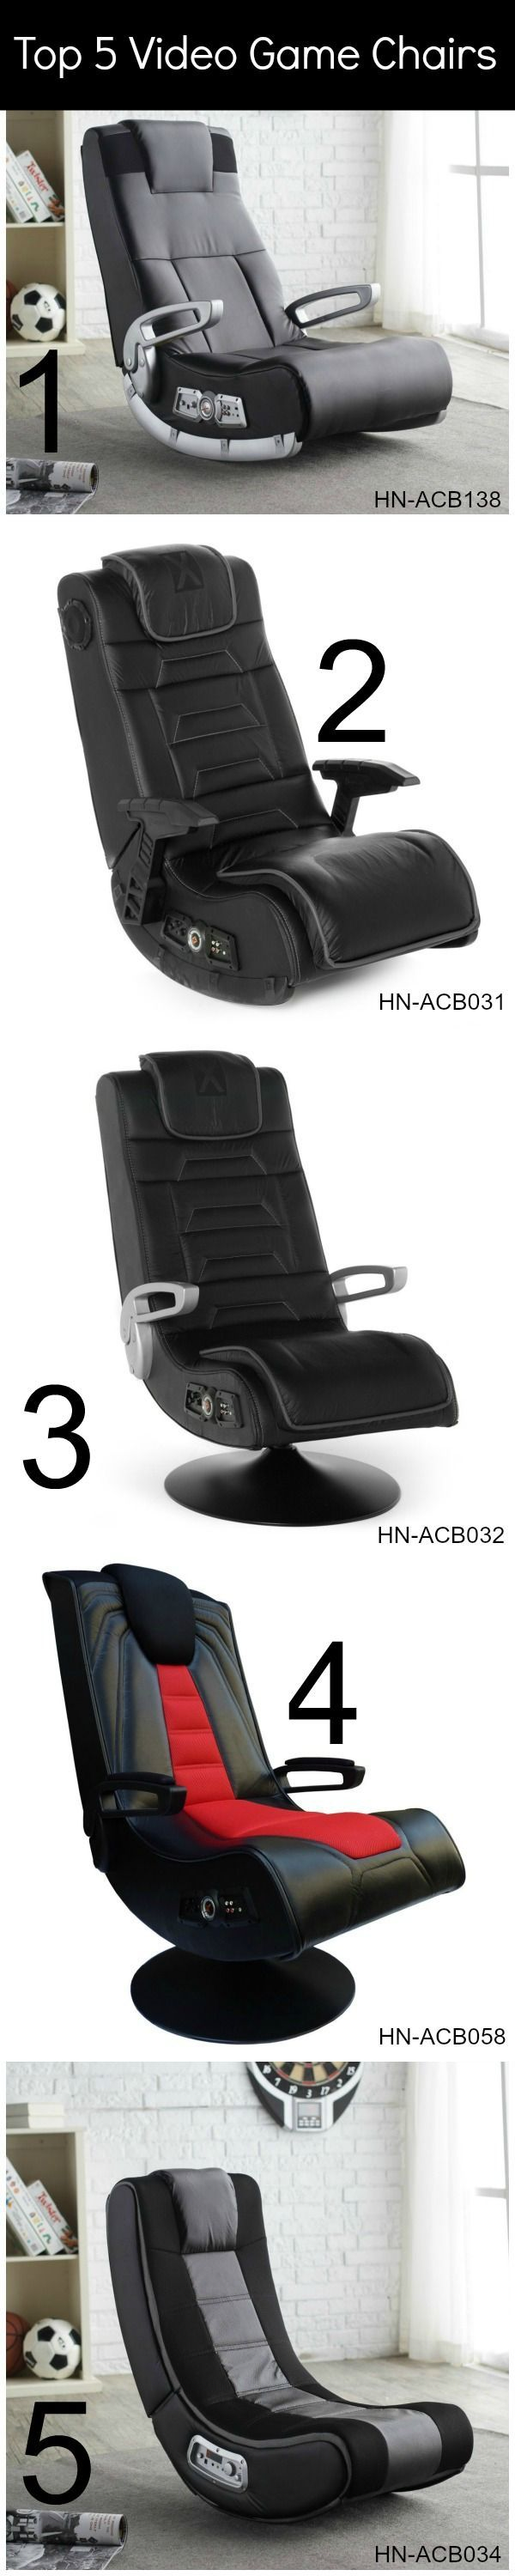 Top 5 video game chairs. Perfect gift!